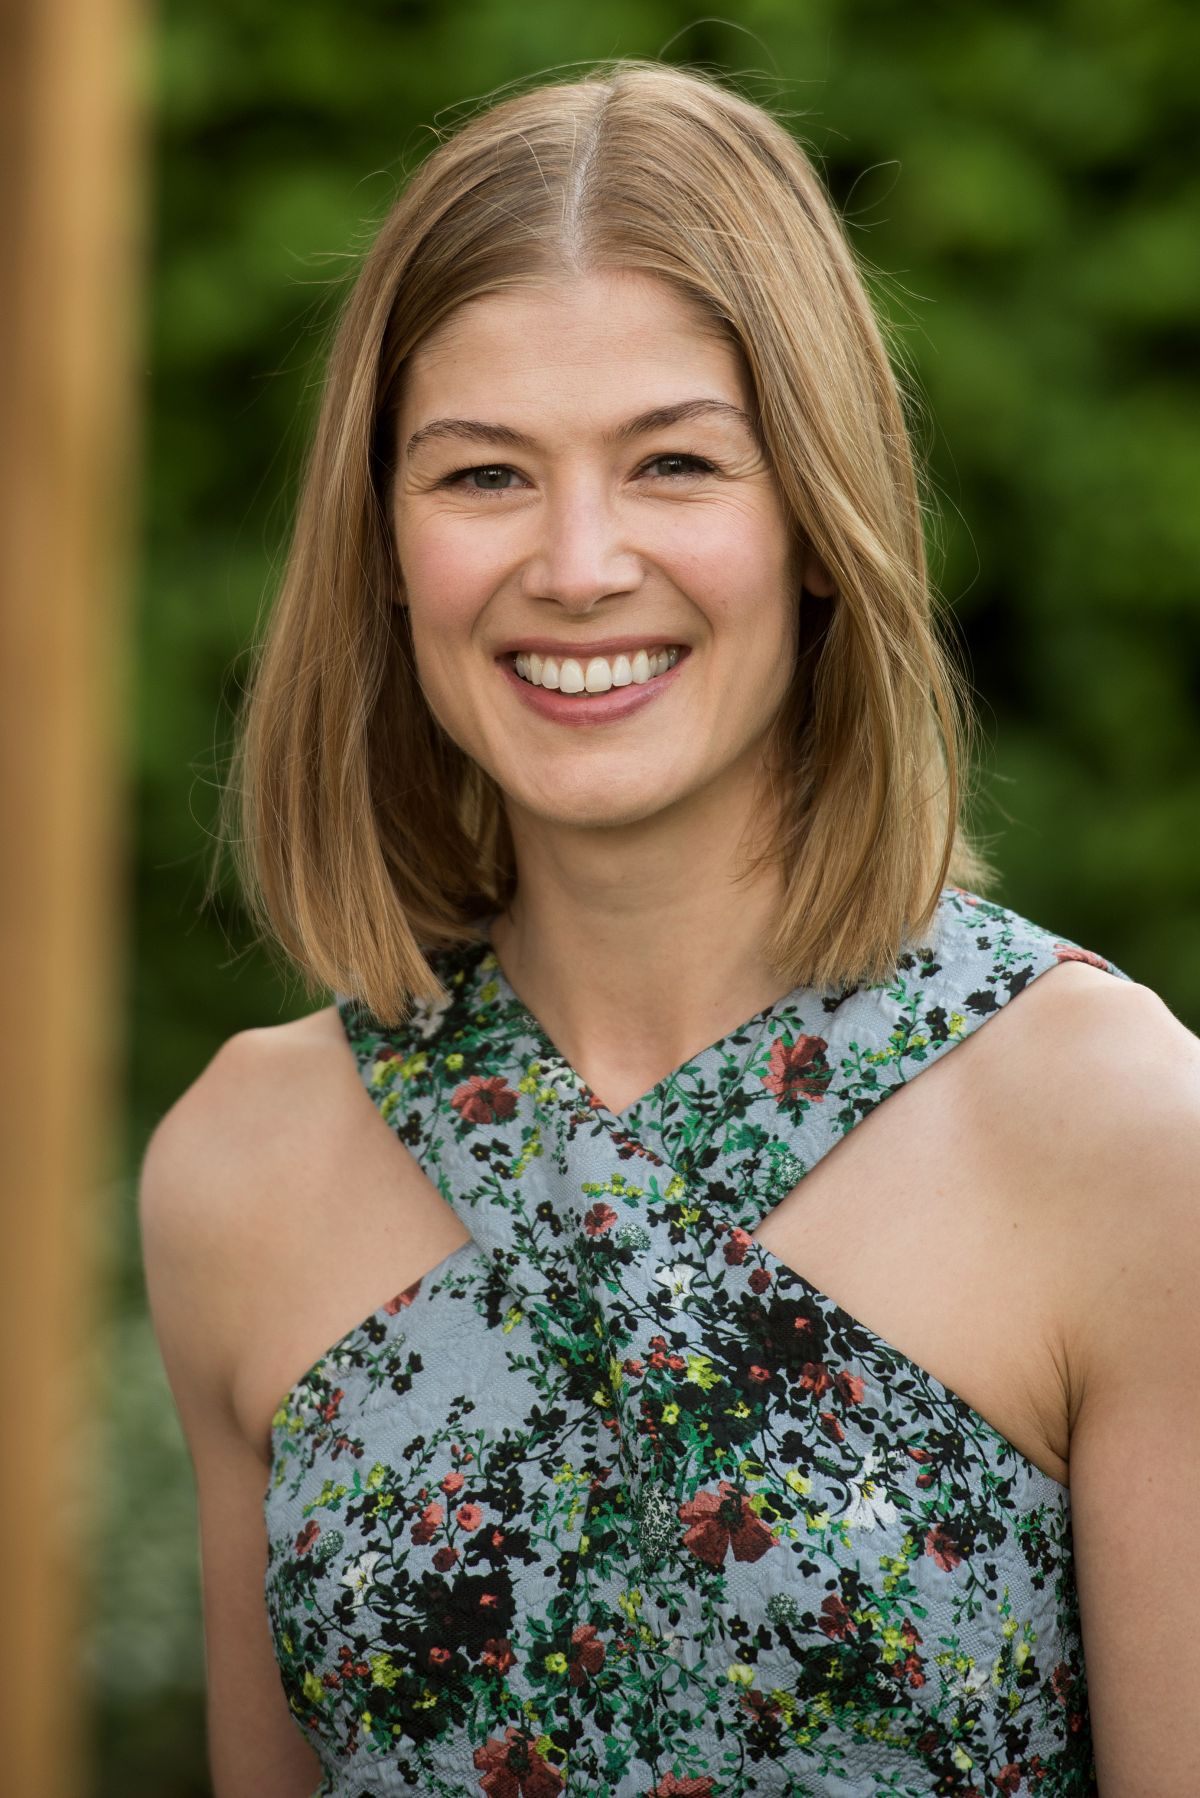 ROSAMUND PIKE at Chelsea Flower Show in London 05/23/2016 - HawtCelebs